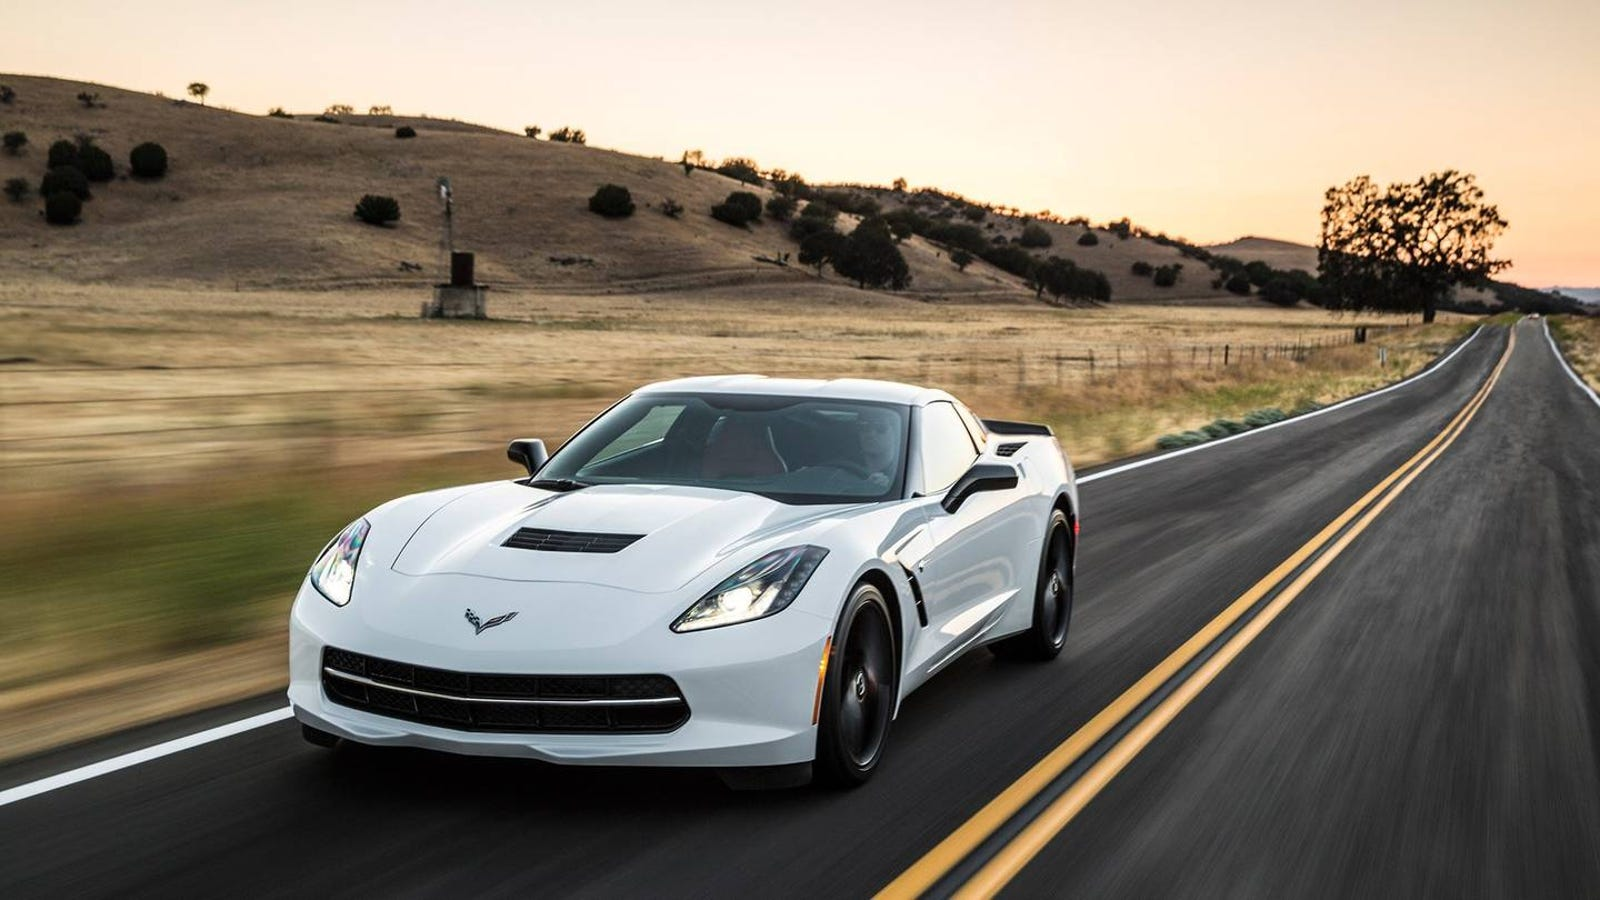 Alike the F-150, a list with GM's name would be incomplete without the Corvette, in this case a base model C7: A car that can easily embarrass much more expensive cars of the same category.